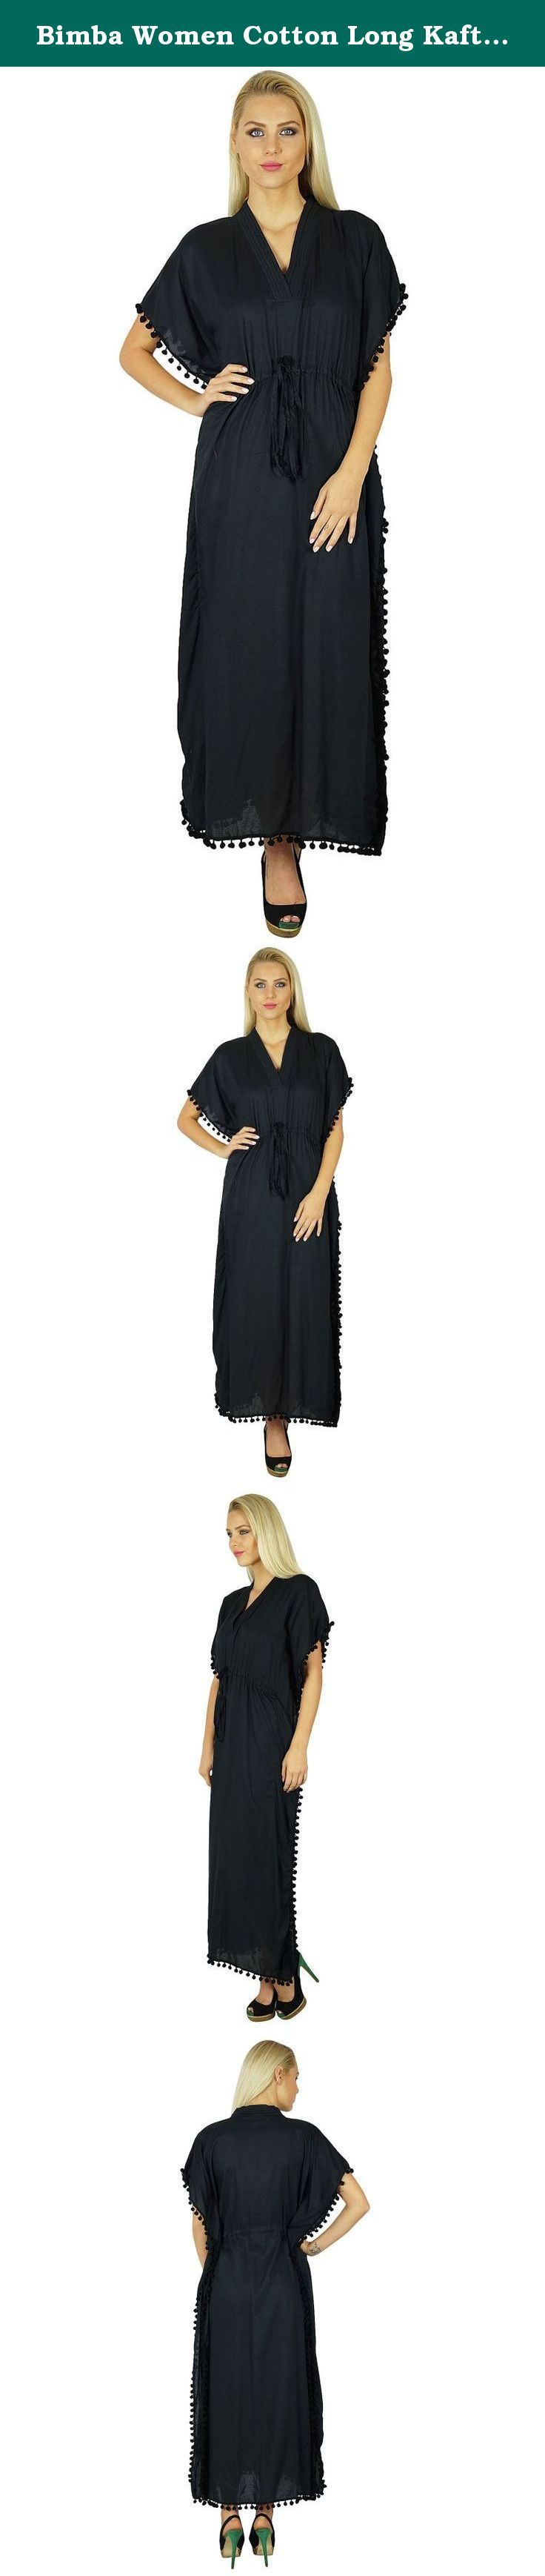 Bimba Women Cotton Long Kaftan With Pom Pom Tassels Maxi Caftan Beach Coverup. Get a boho chic look by bedecking yourself in this amazingly handmade long kaftan. With a string on the upper waist designed to highlight your waistline. The adorable kimono sleeves and the V neck gets accentuated because of the tassels stitched uniformly in a row on both the sides of the kaftan. Bimba has kept both your style and comfort in mind. and thus, this short kaftan has been created out of cotton…